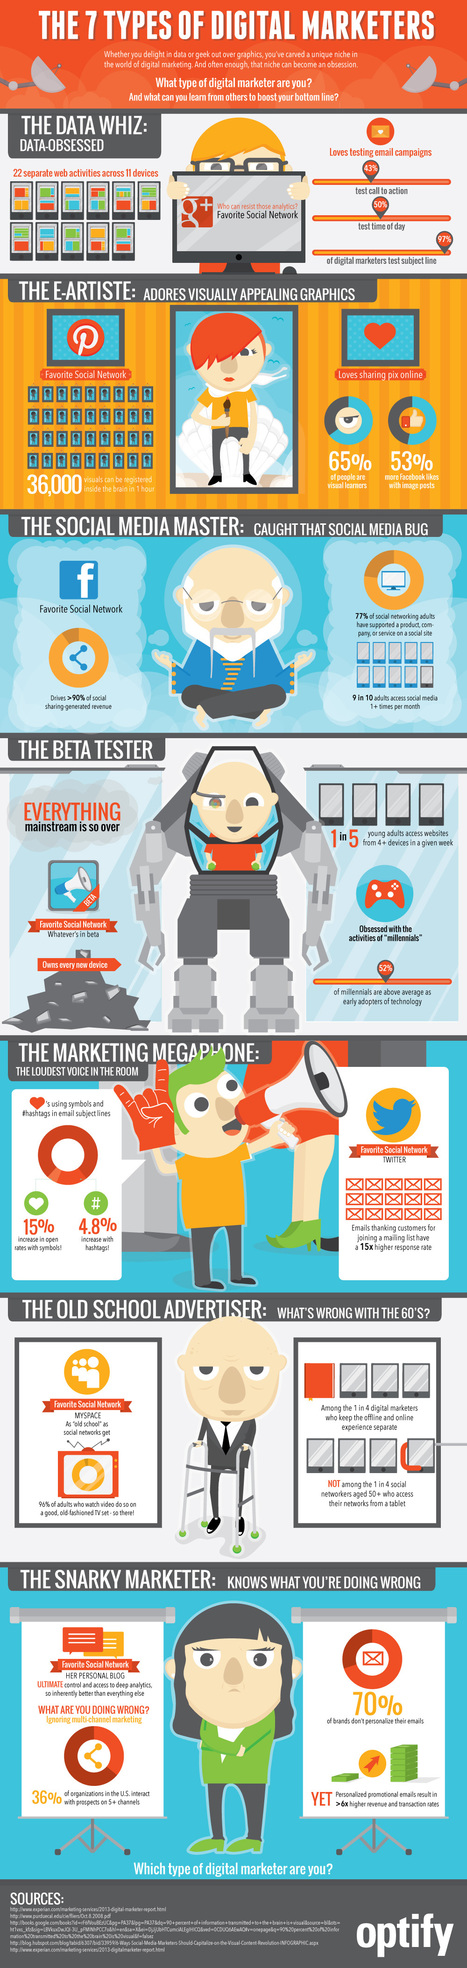 7 Types Of Digital Marketers: Modern Marketing Humor [Infographic] - Bit Rebels | Digital Marketing and Analytics | Scoop.it